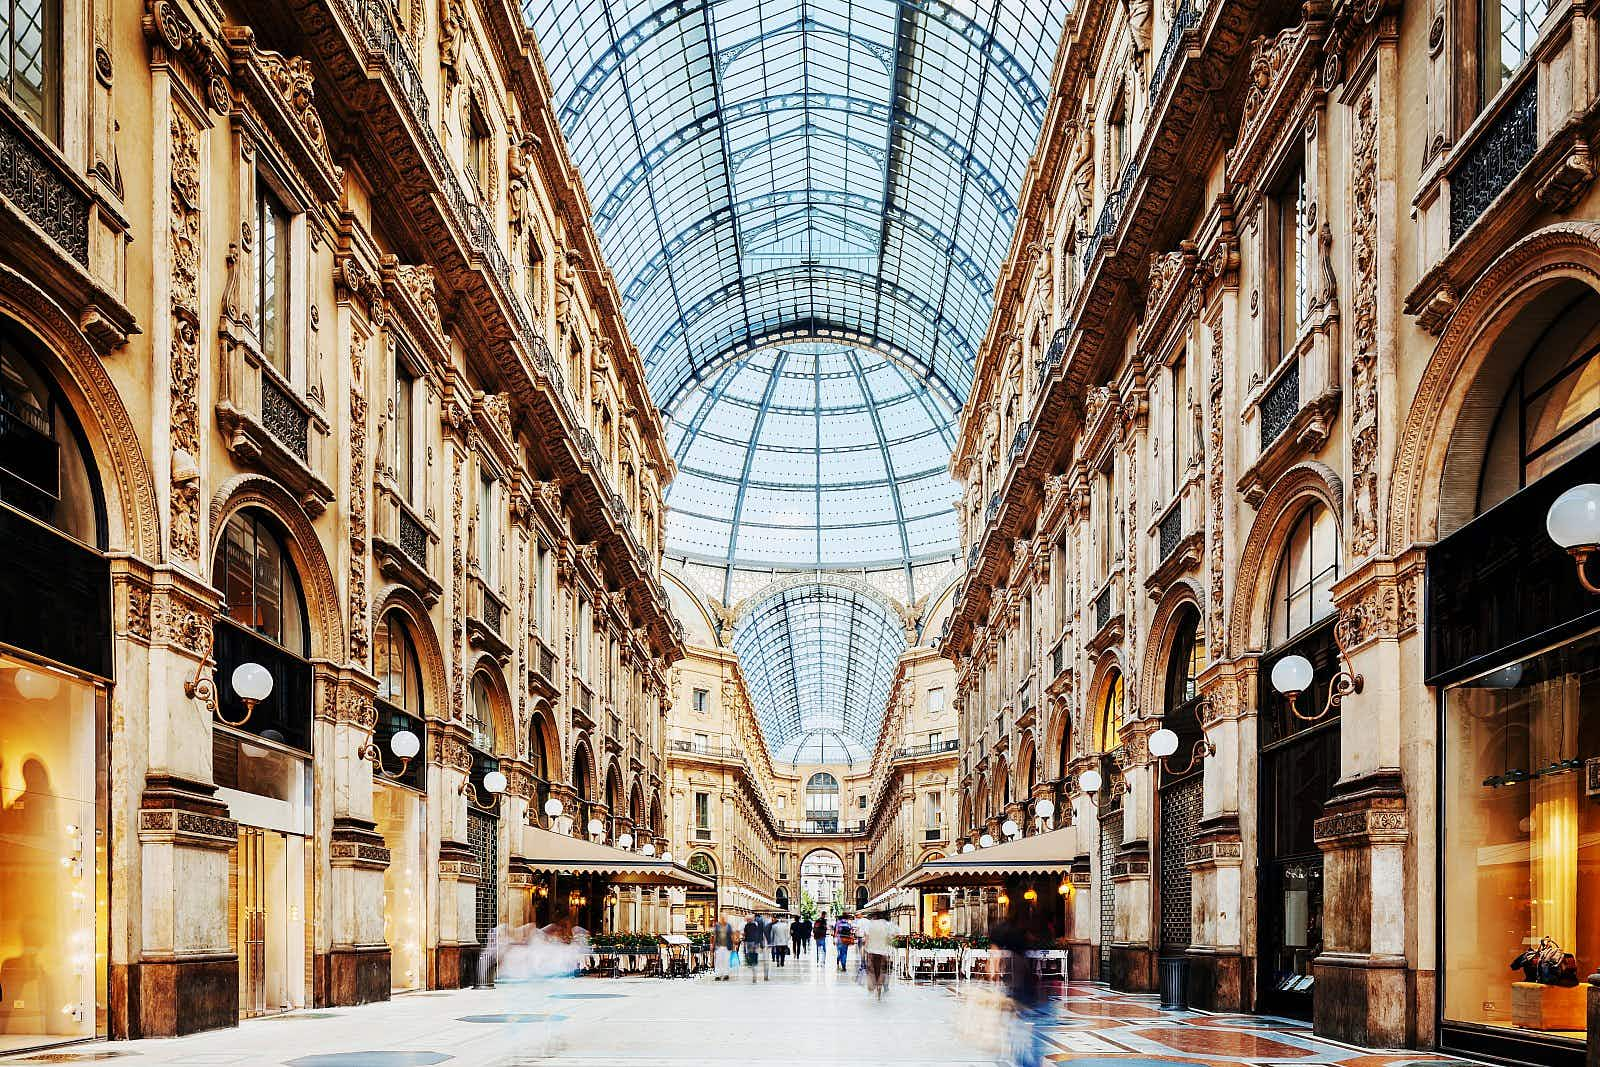 Inside the neoclassical Galleria Vittorio Emanuele II shopping arcade, looking up to its roof made of iron and glass, with upmarket stores either side of the arcade.